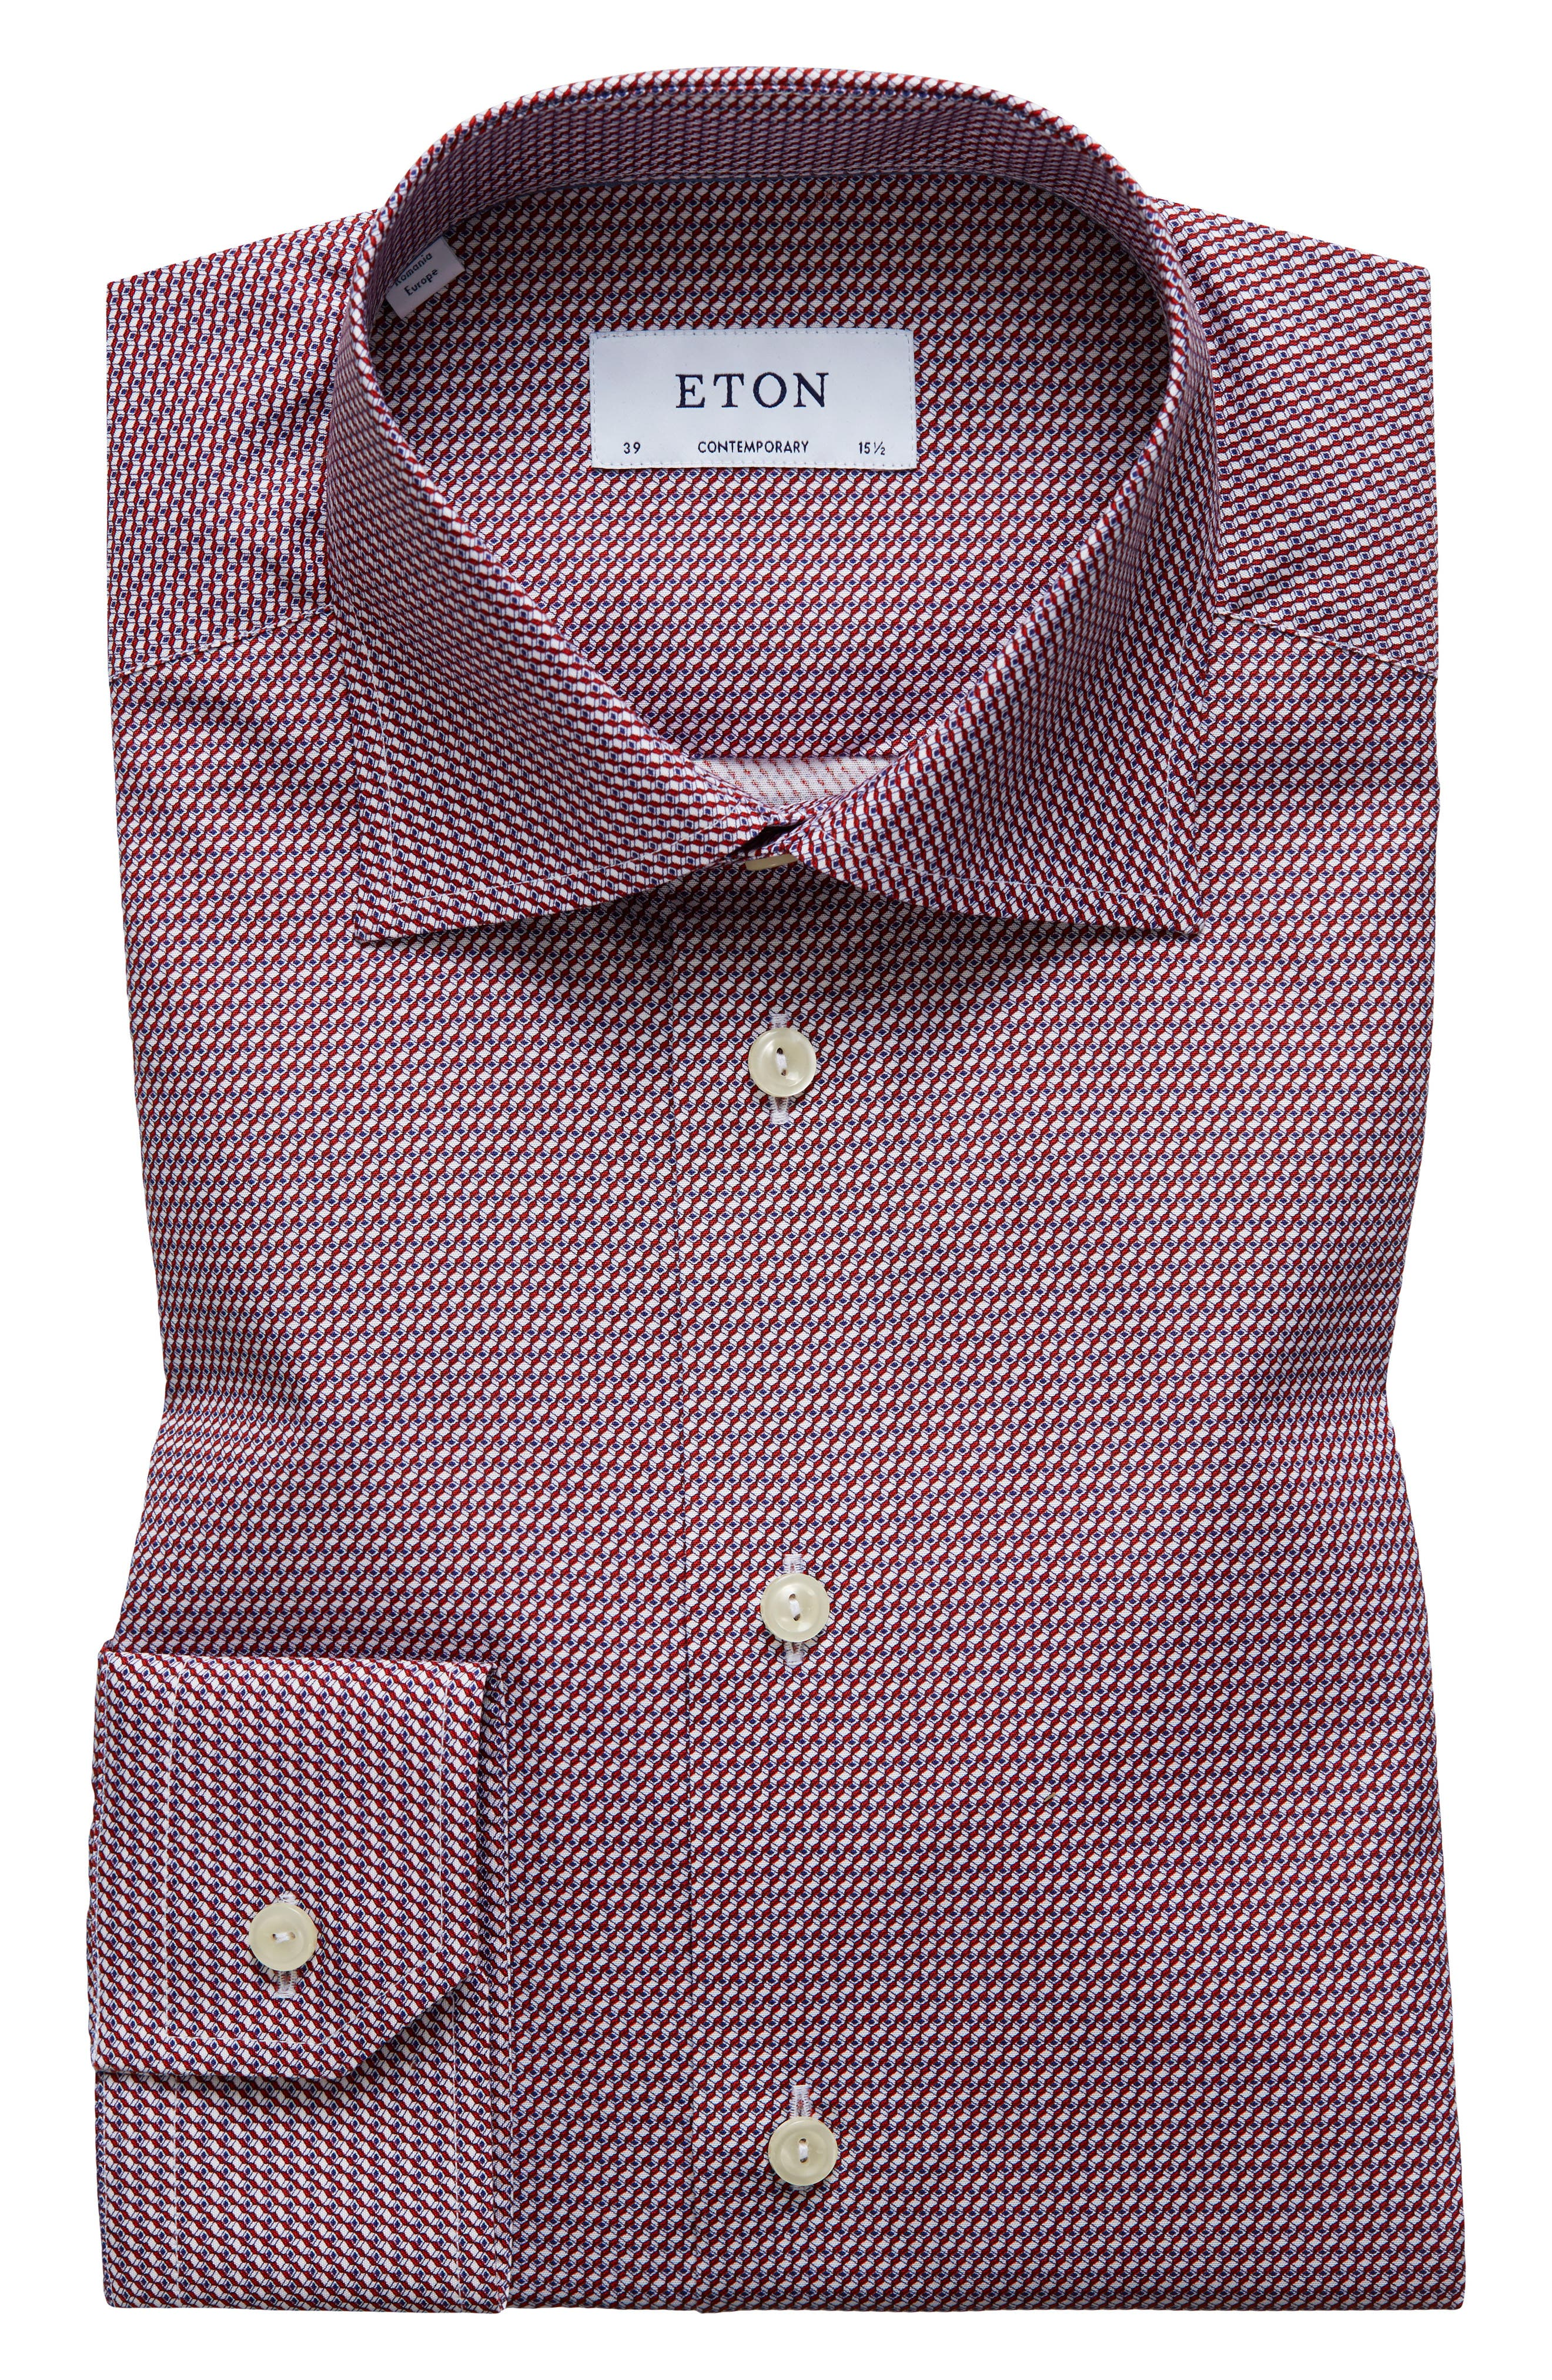 Contemporary Fit Geometric Dress Shirt,                             Main thumbnail 1, color,                             Red